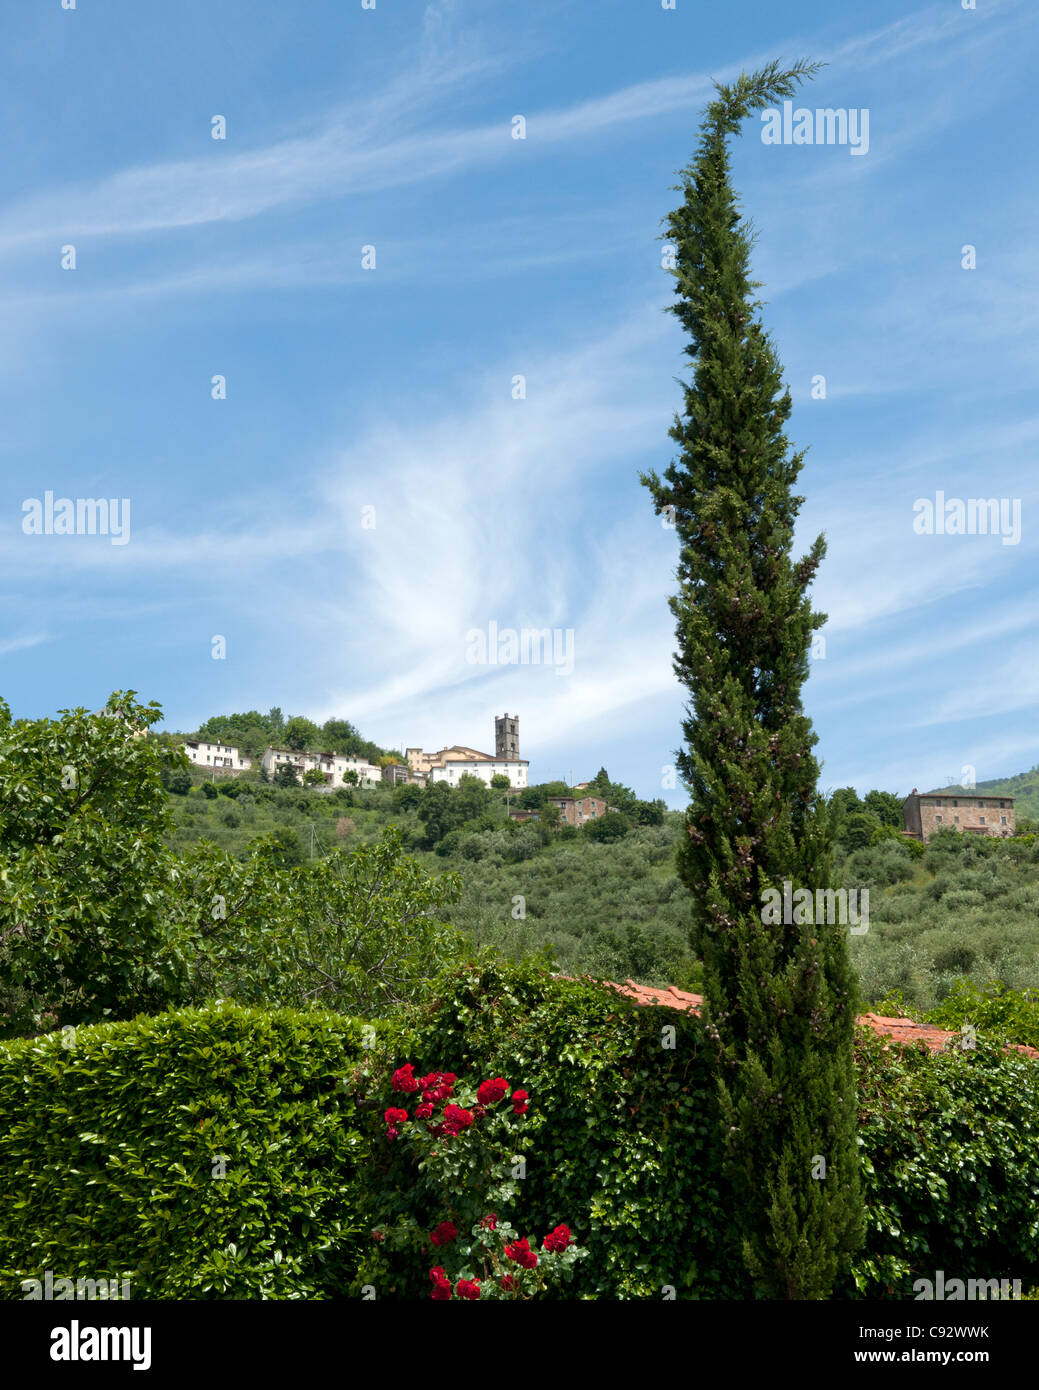 Tuscany is famous for its rolling landscapes small hilltop towns and distinctive cypress trees. - Stock Image